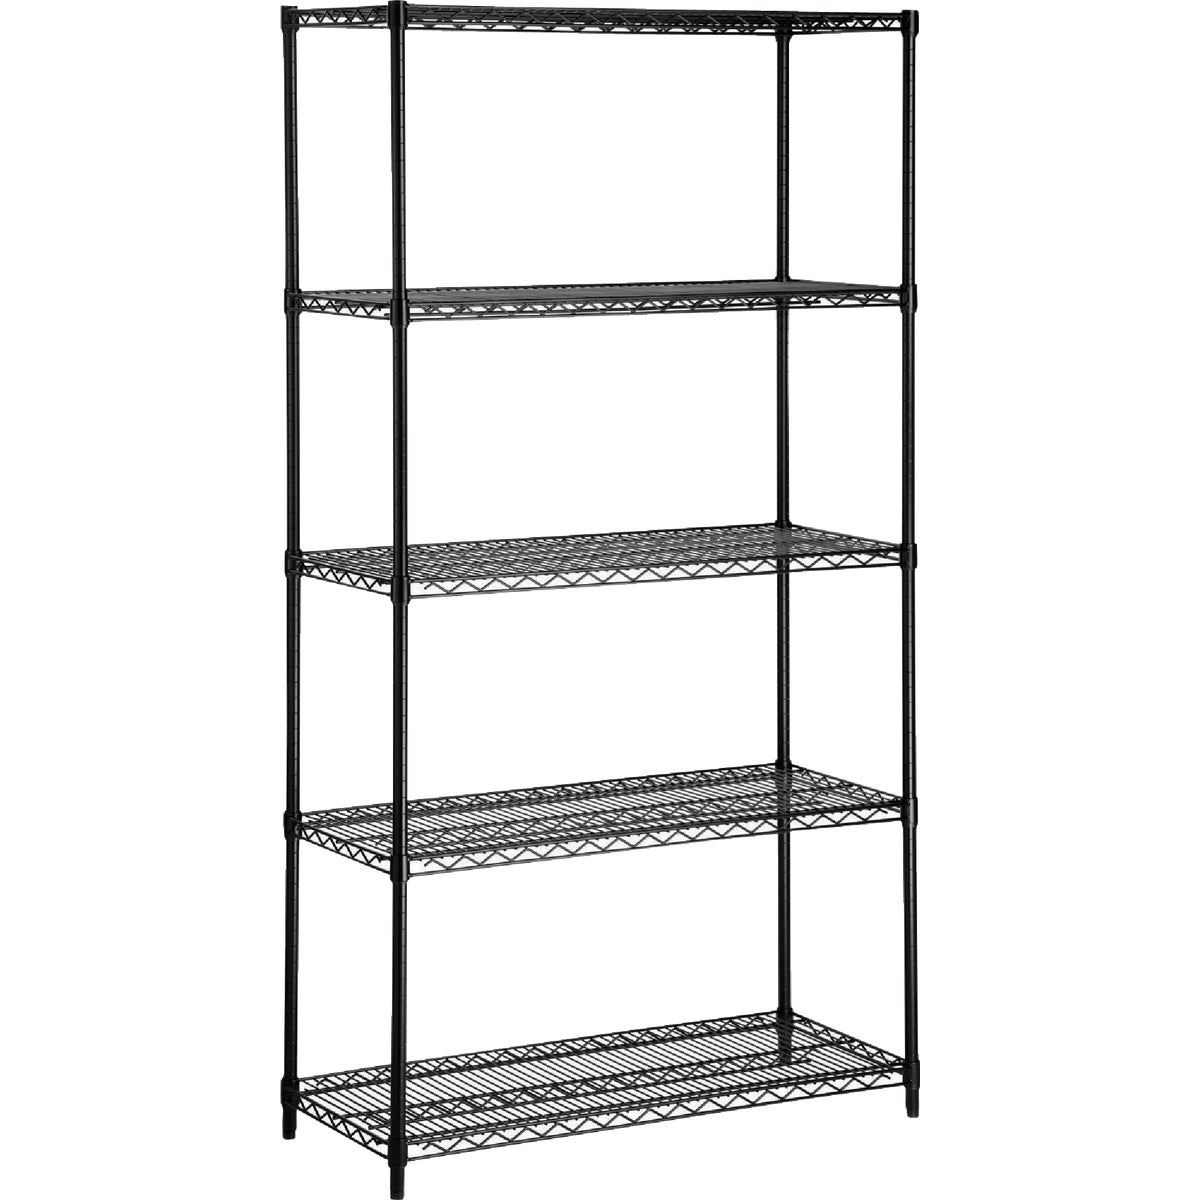 BLK 5 TIER HVY DTY SHELF